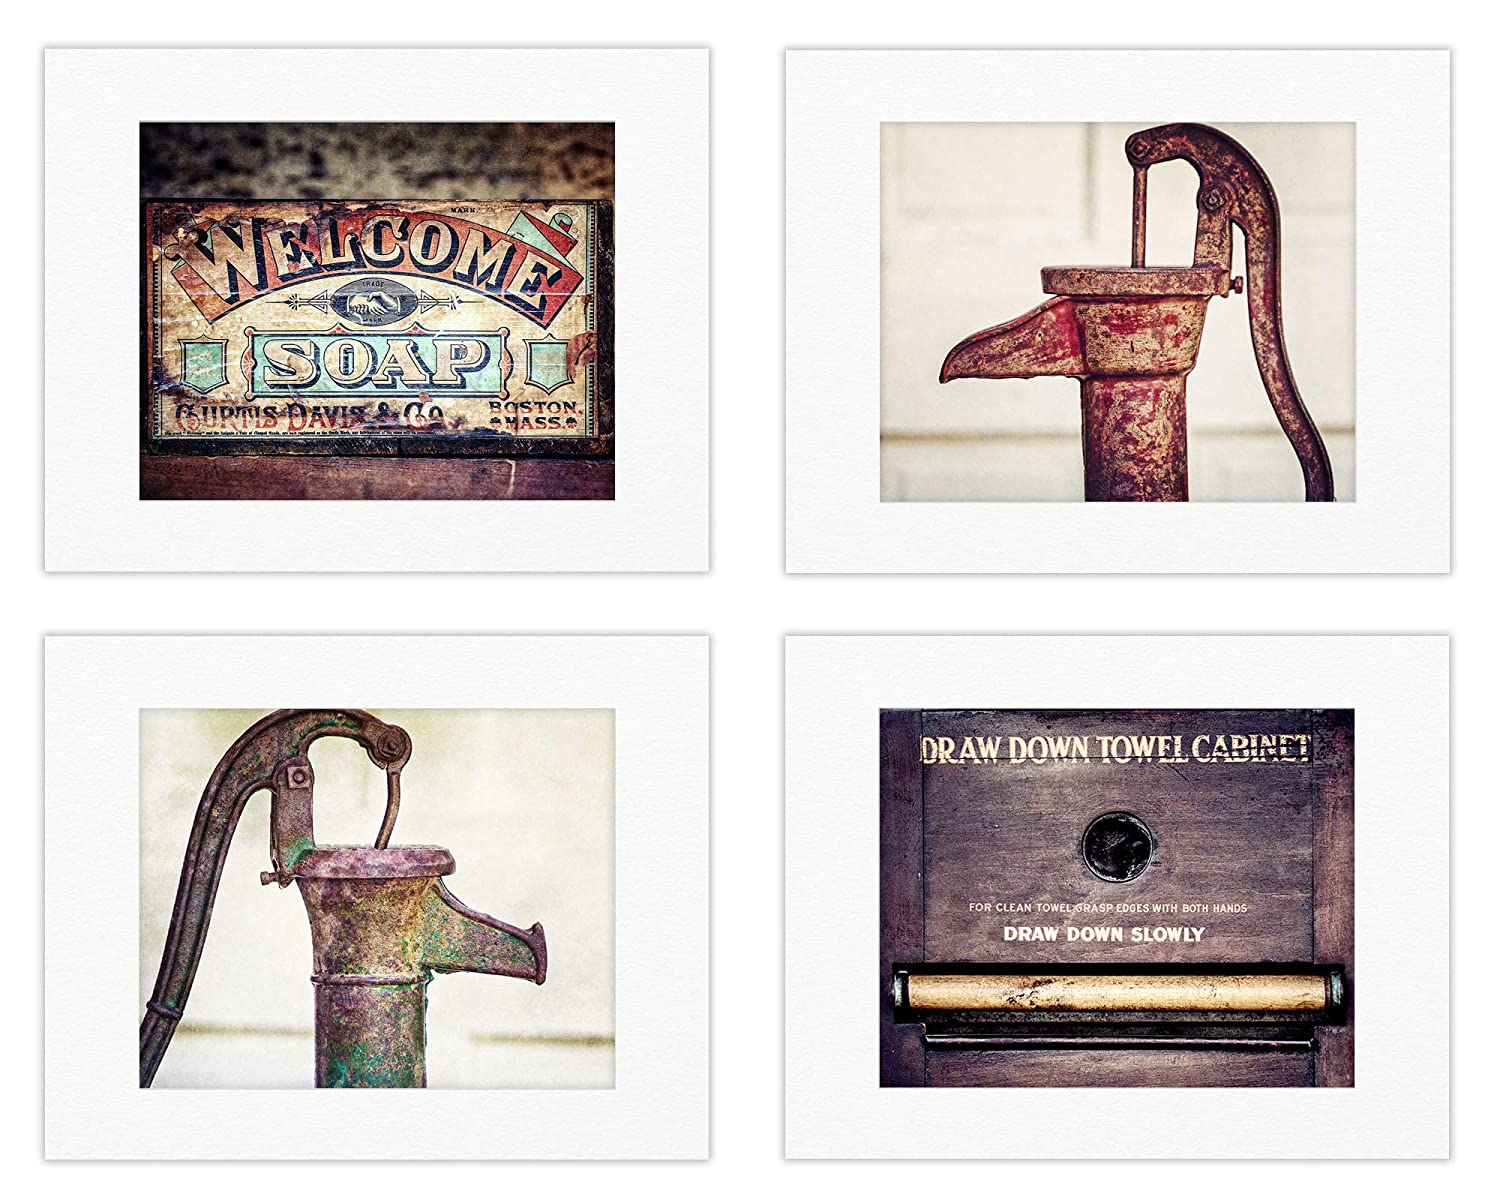 Rustic Country Bathroom Wall Art Decor Set of 4 Photo Prints or Matted Prints (Not Framed). Farmhouse Bath Pictures in Brown, Red, Green, Teal. (4 8x10 Prints with 11x14 Mats)